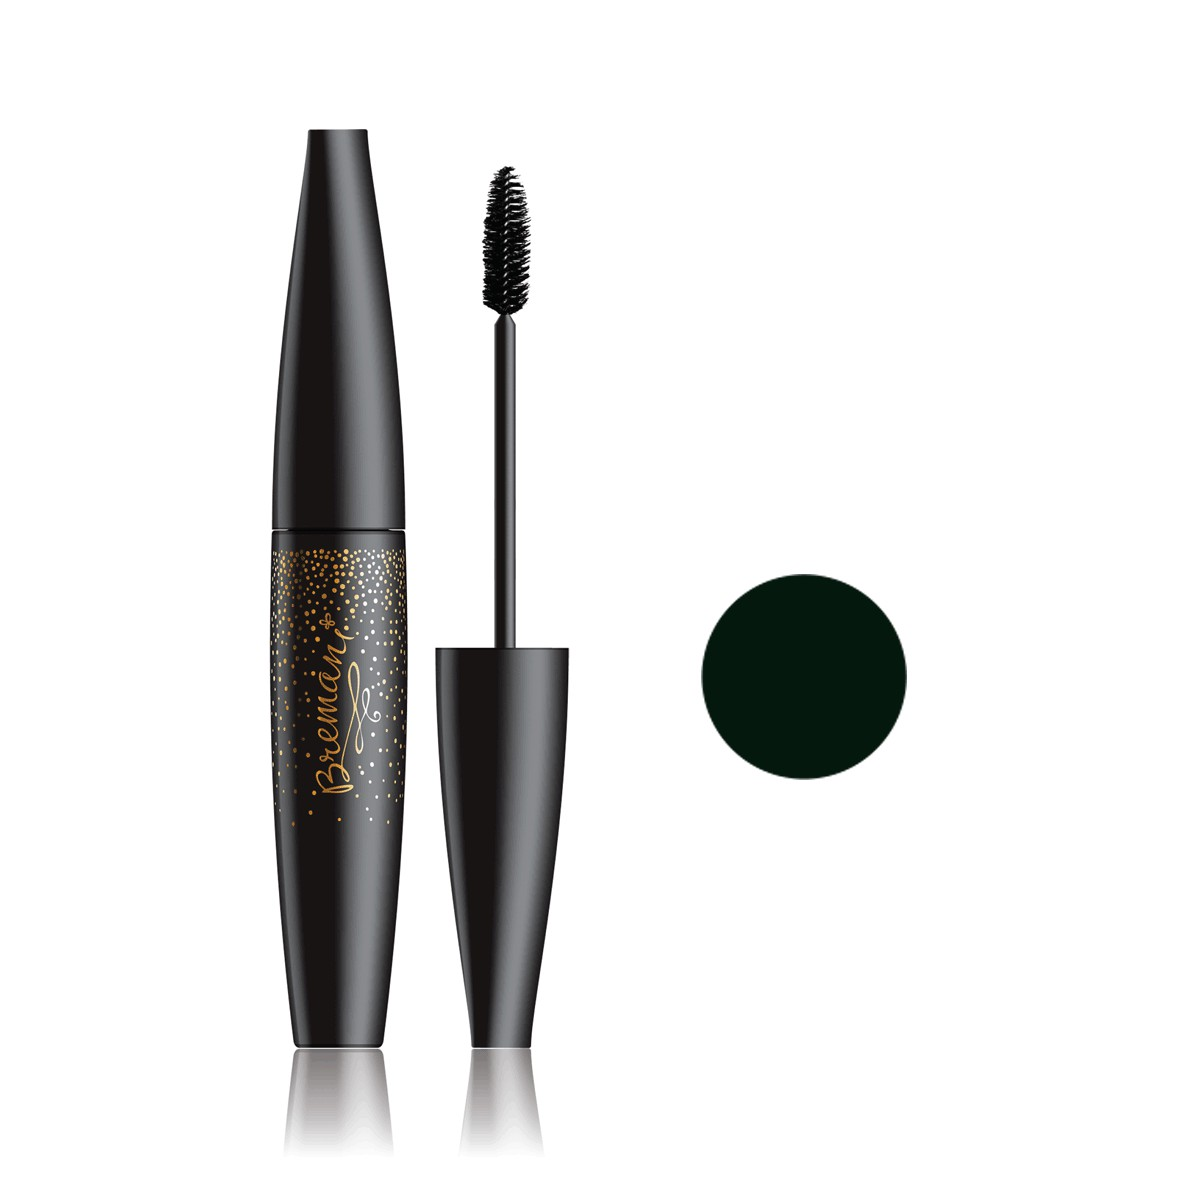 Mascara Incredible Volume Black Magic